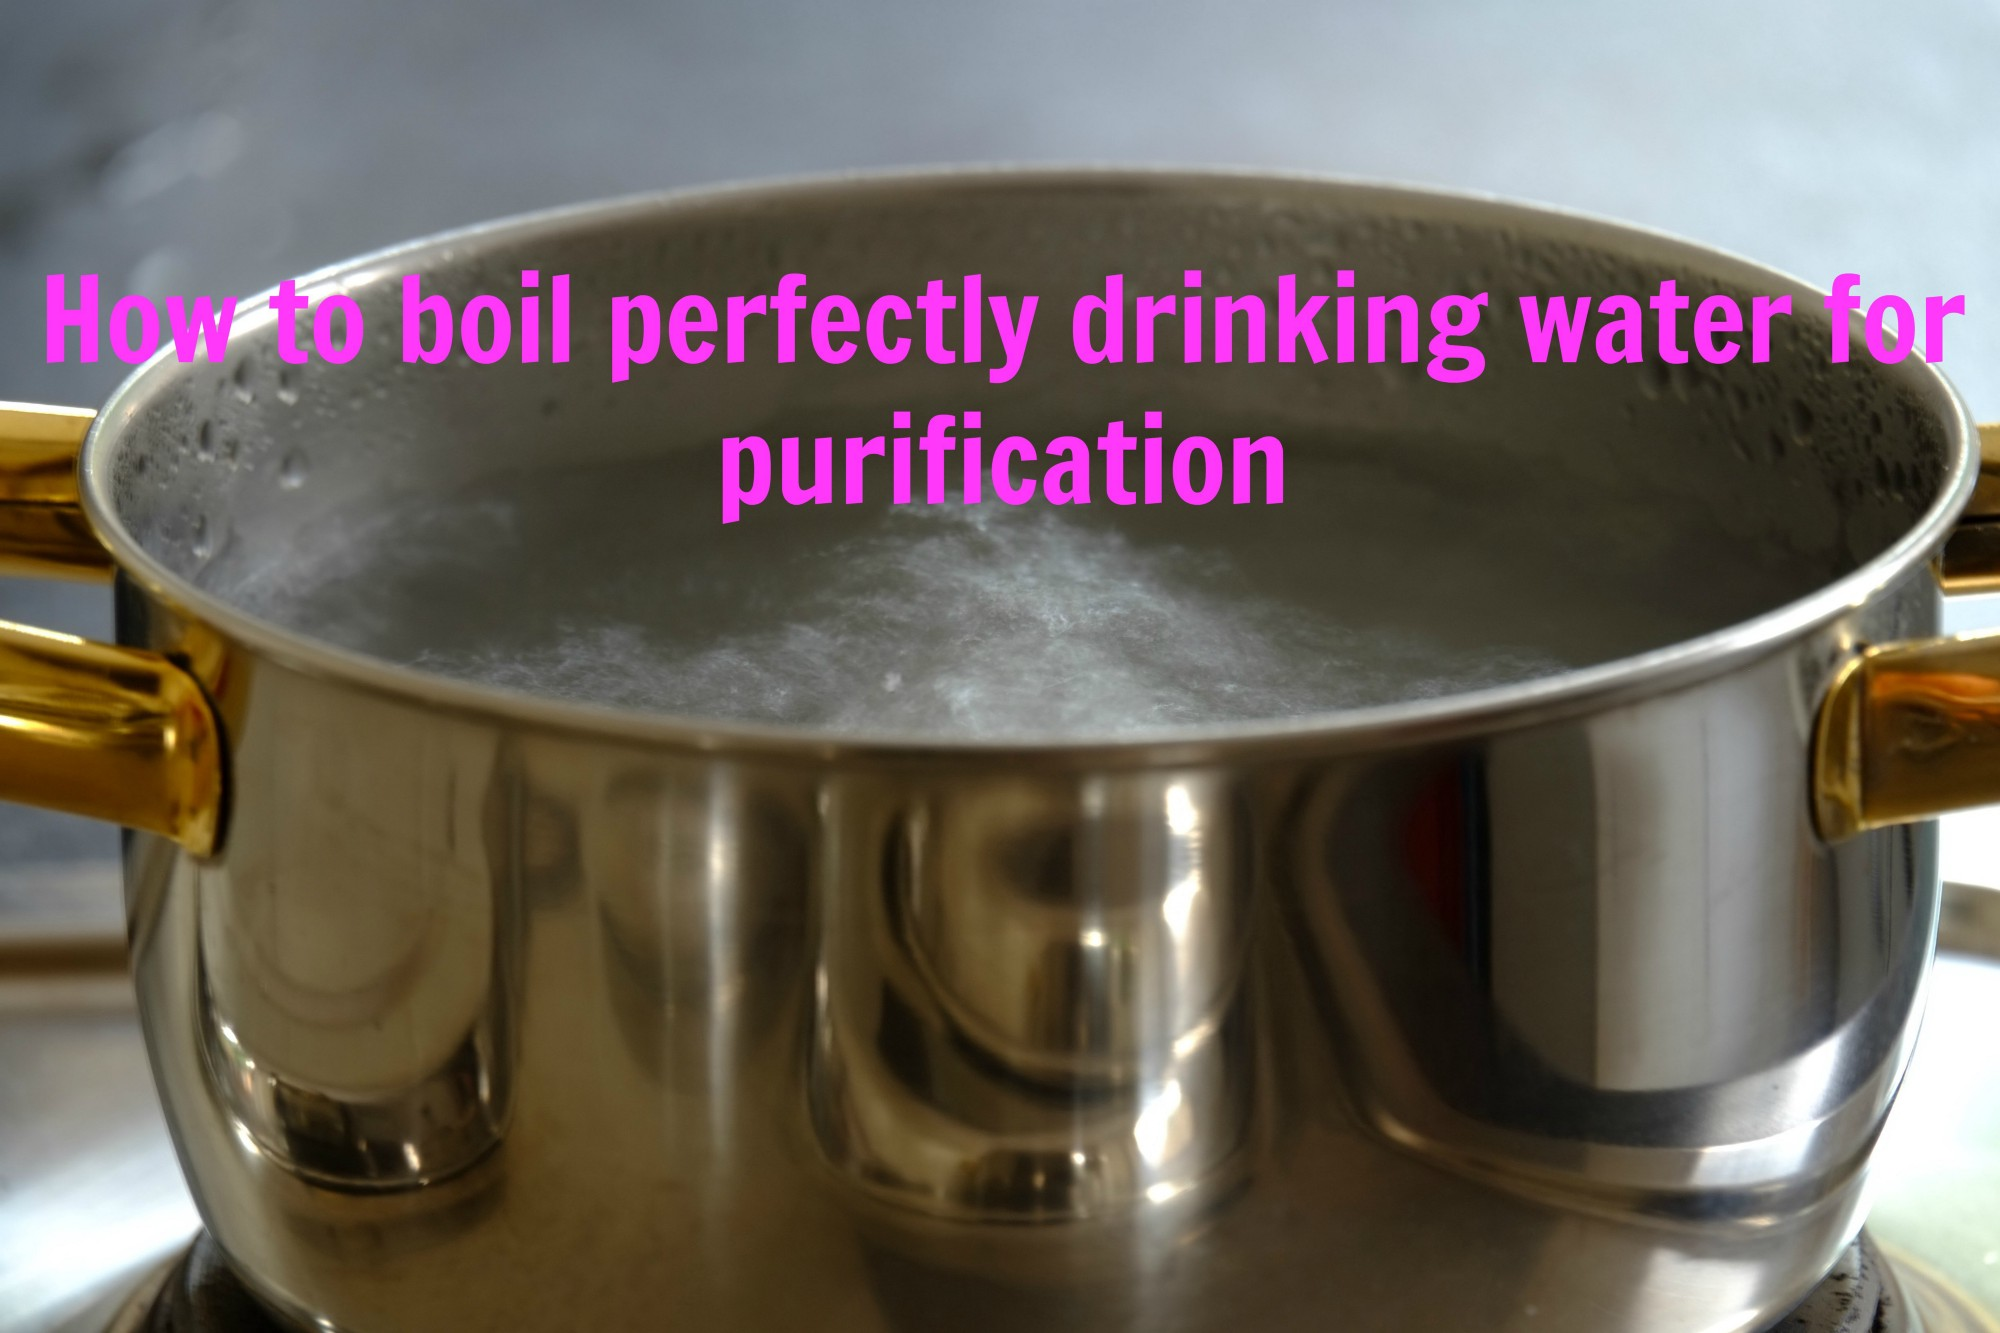 How to boil perfectly drinking water for purification